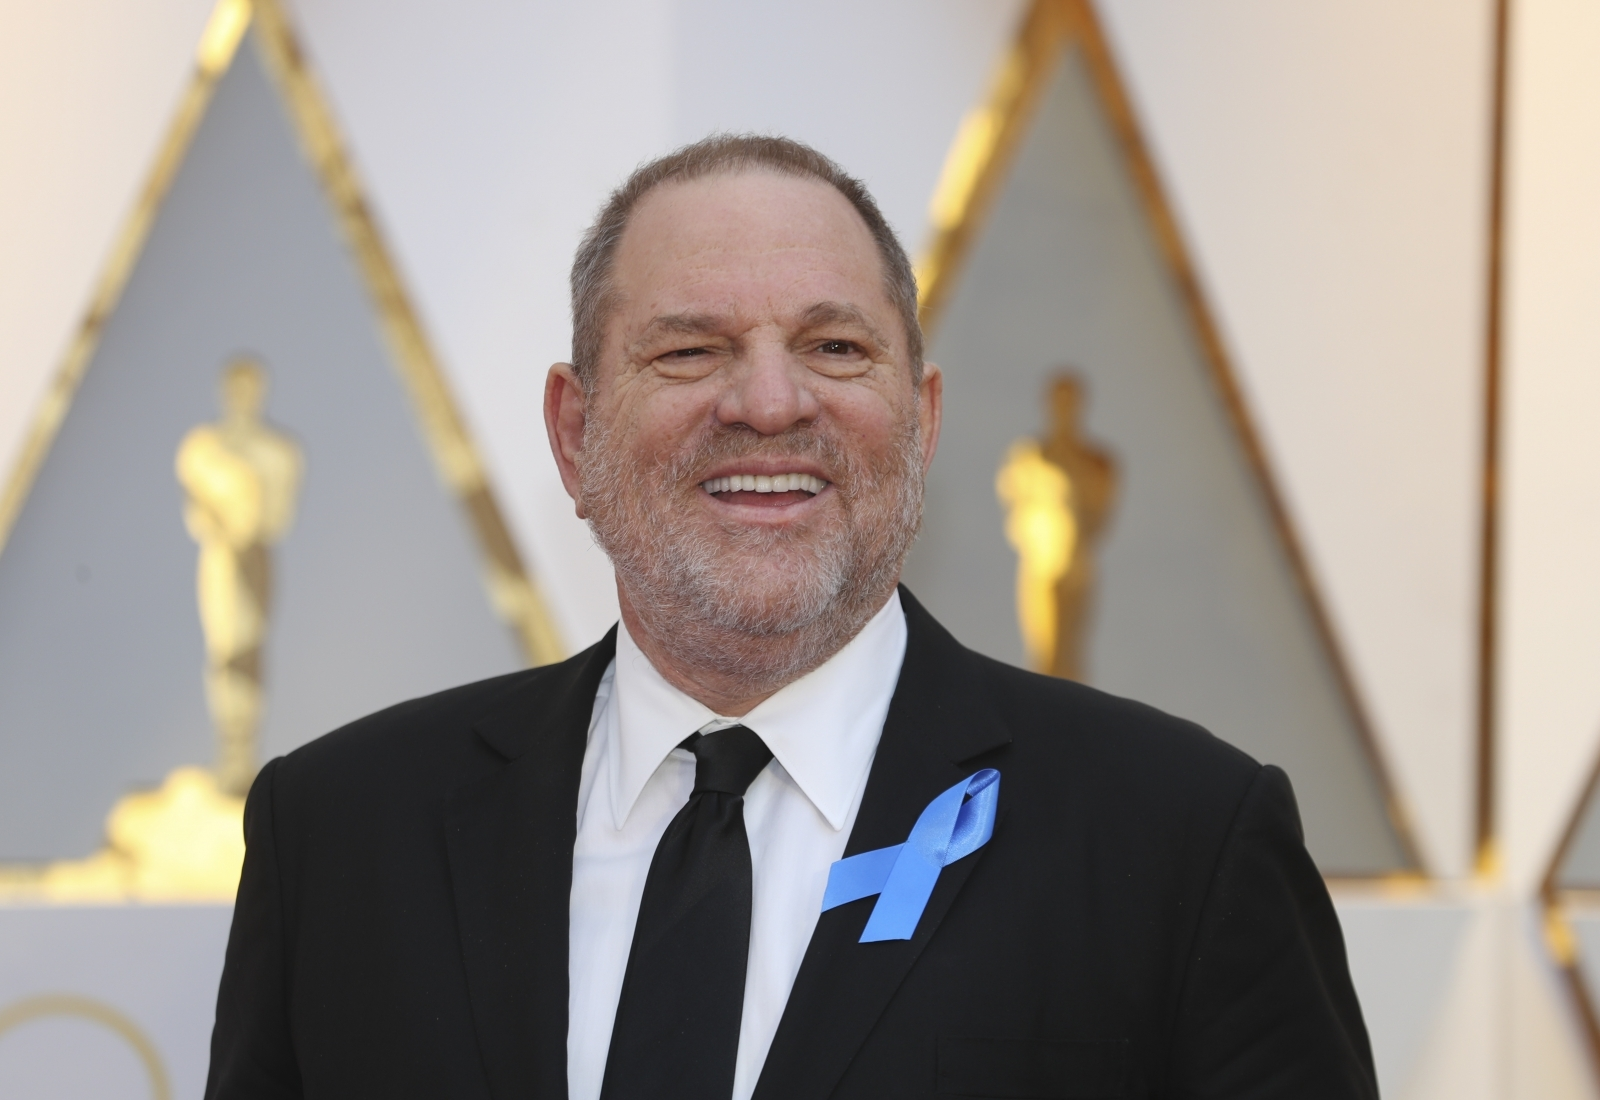 Hollywood Mogul Harvey Weinstein Faces Sex Harassment Accusations Dating Back Decades